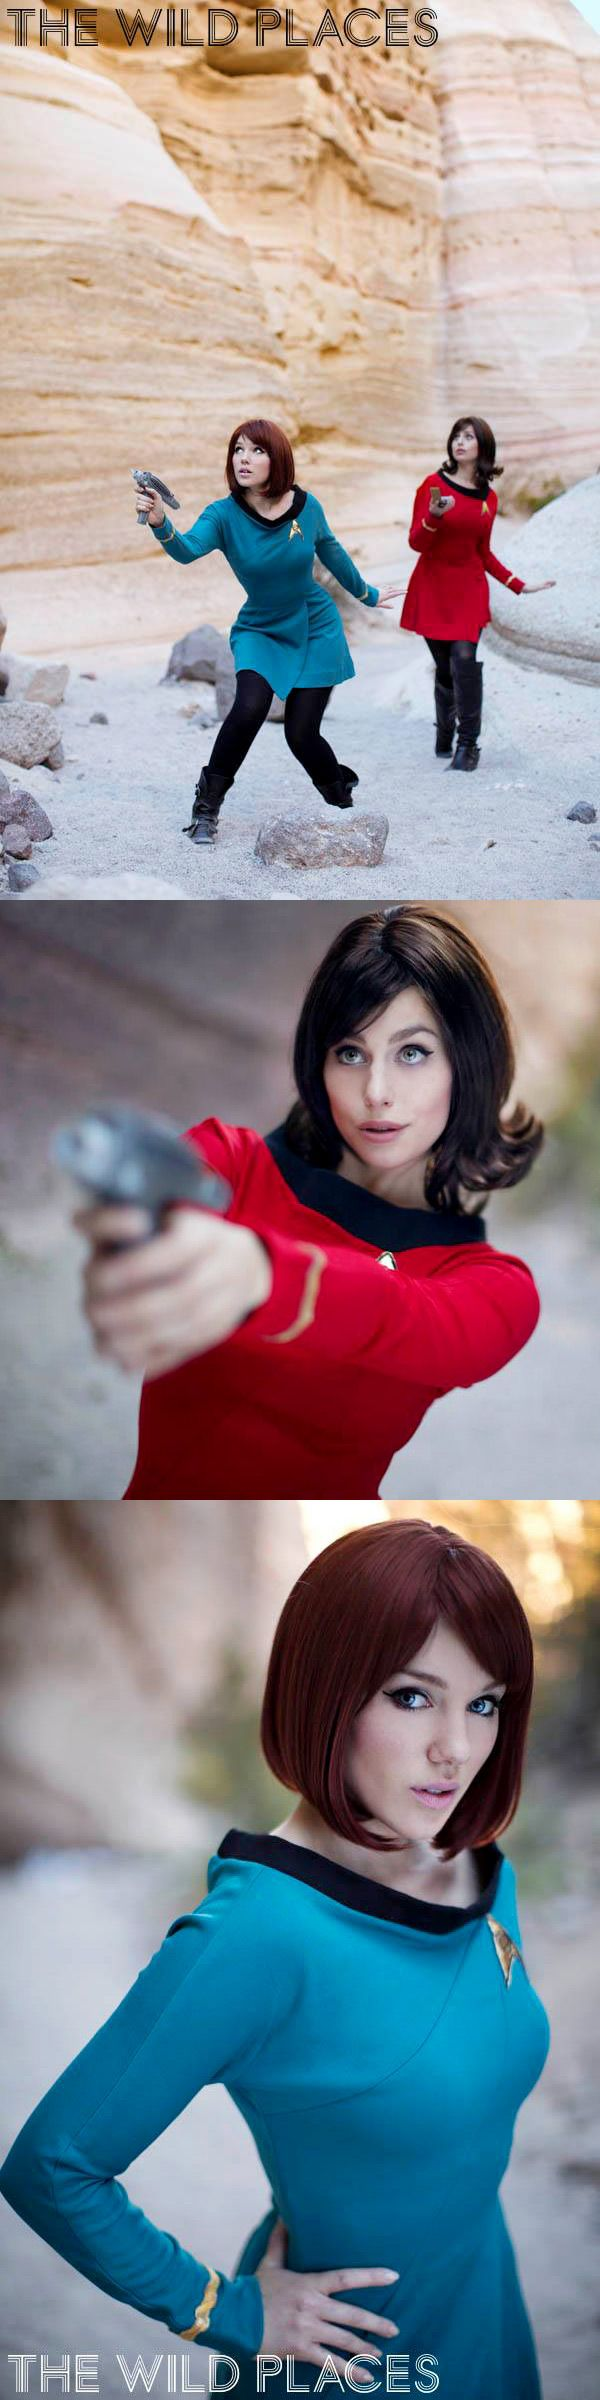 @Anna_photo's 2013 The Wild Places New Mexico Star Trek Photoshoot with Meagan Marie and Cupcake Disko Cosplay